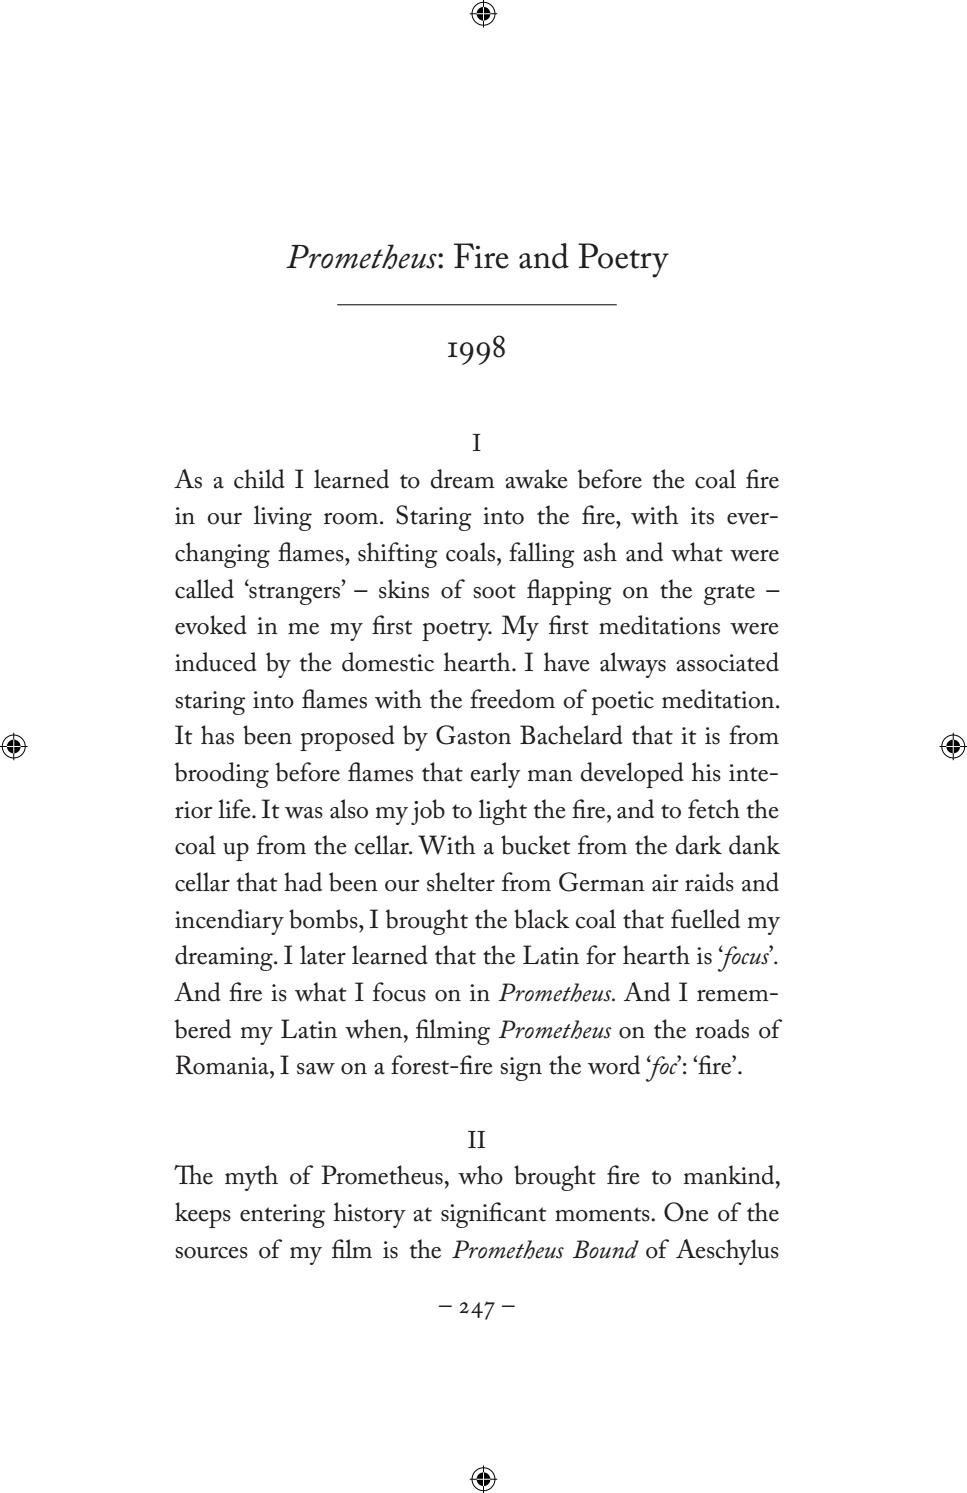 prometheus fire and poetry by tony harrison by faber and faber